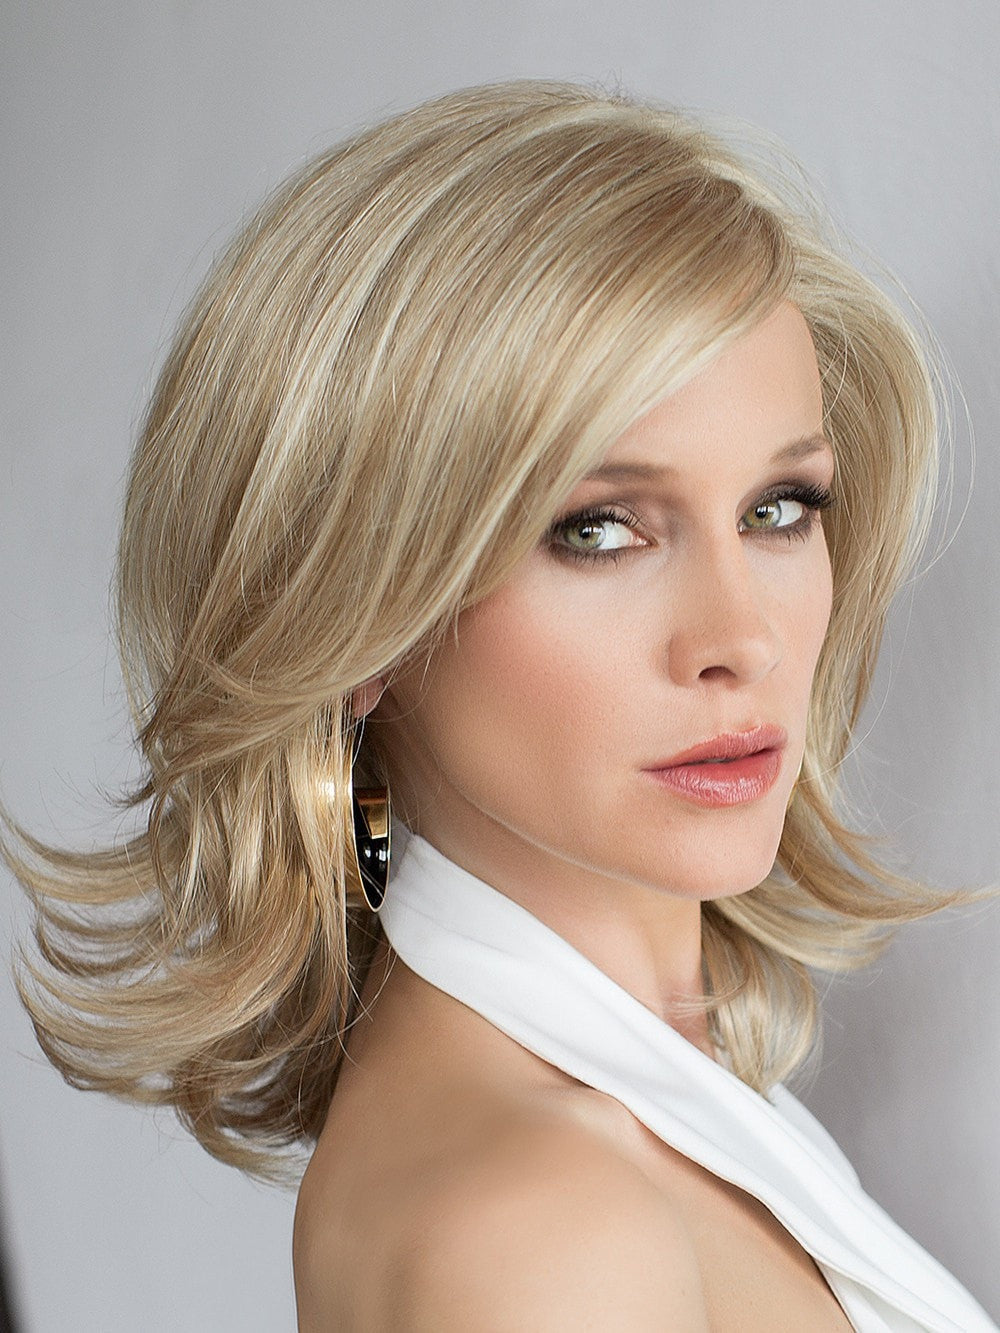 Ellen Wille Splendid offers a ear to ear extended lace front offers versatile styling and the most seamless, natural hairline.